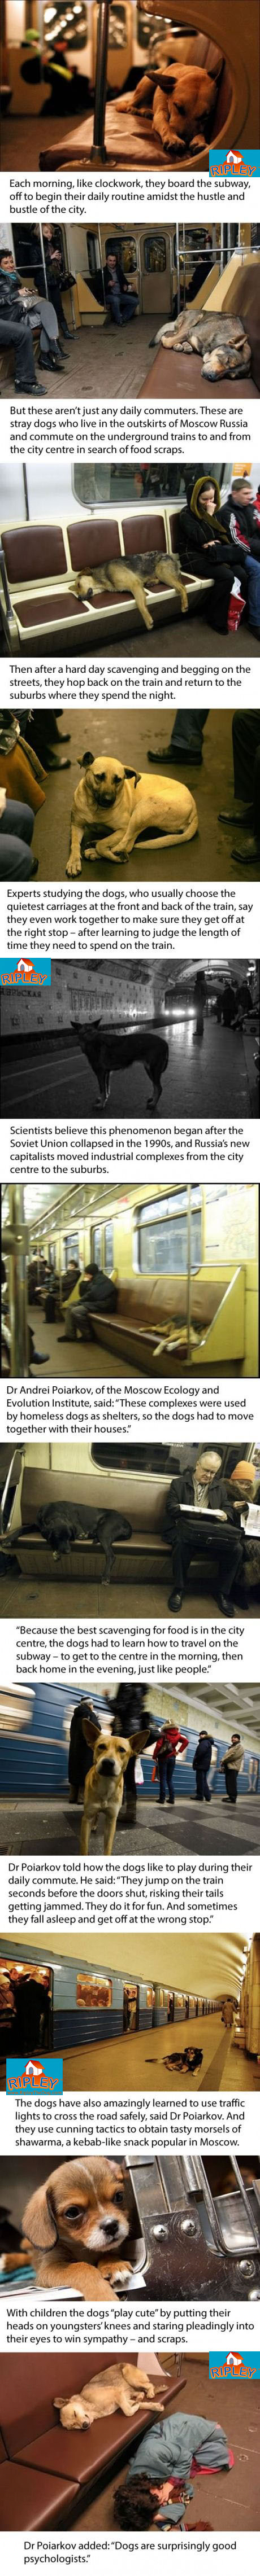 dogs on moscow suway